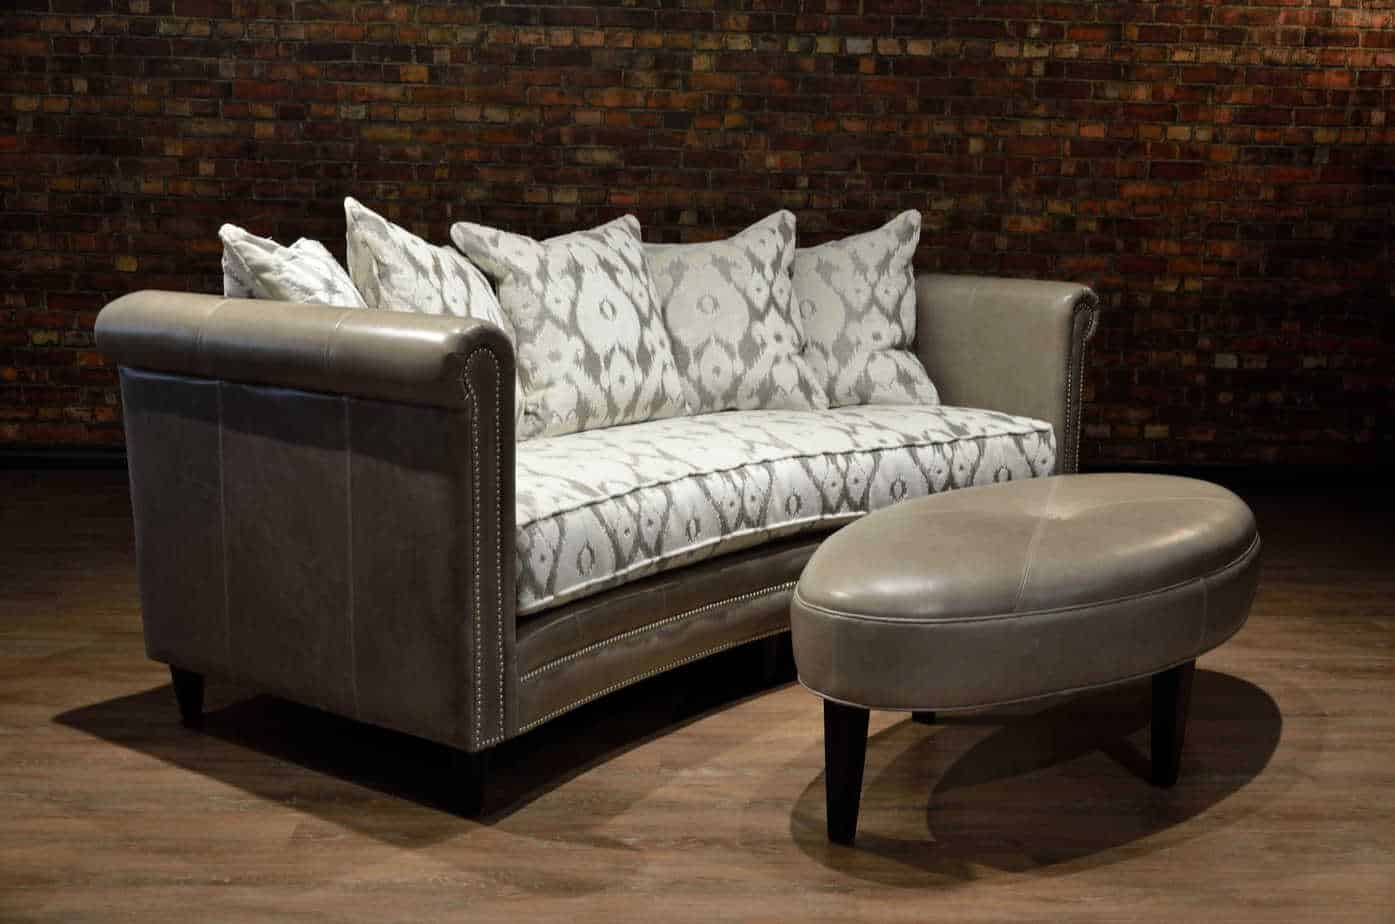 Guinevere Leather Sofa   Canada's Boss Leather Sofas and ...